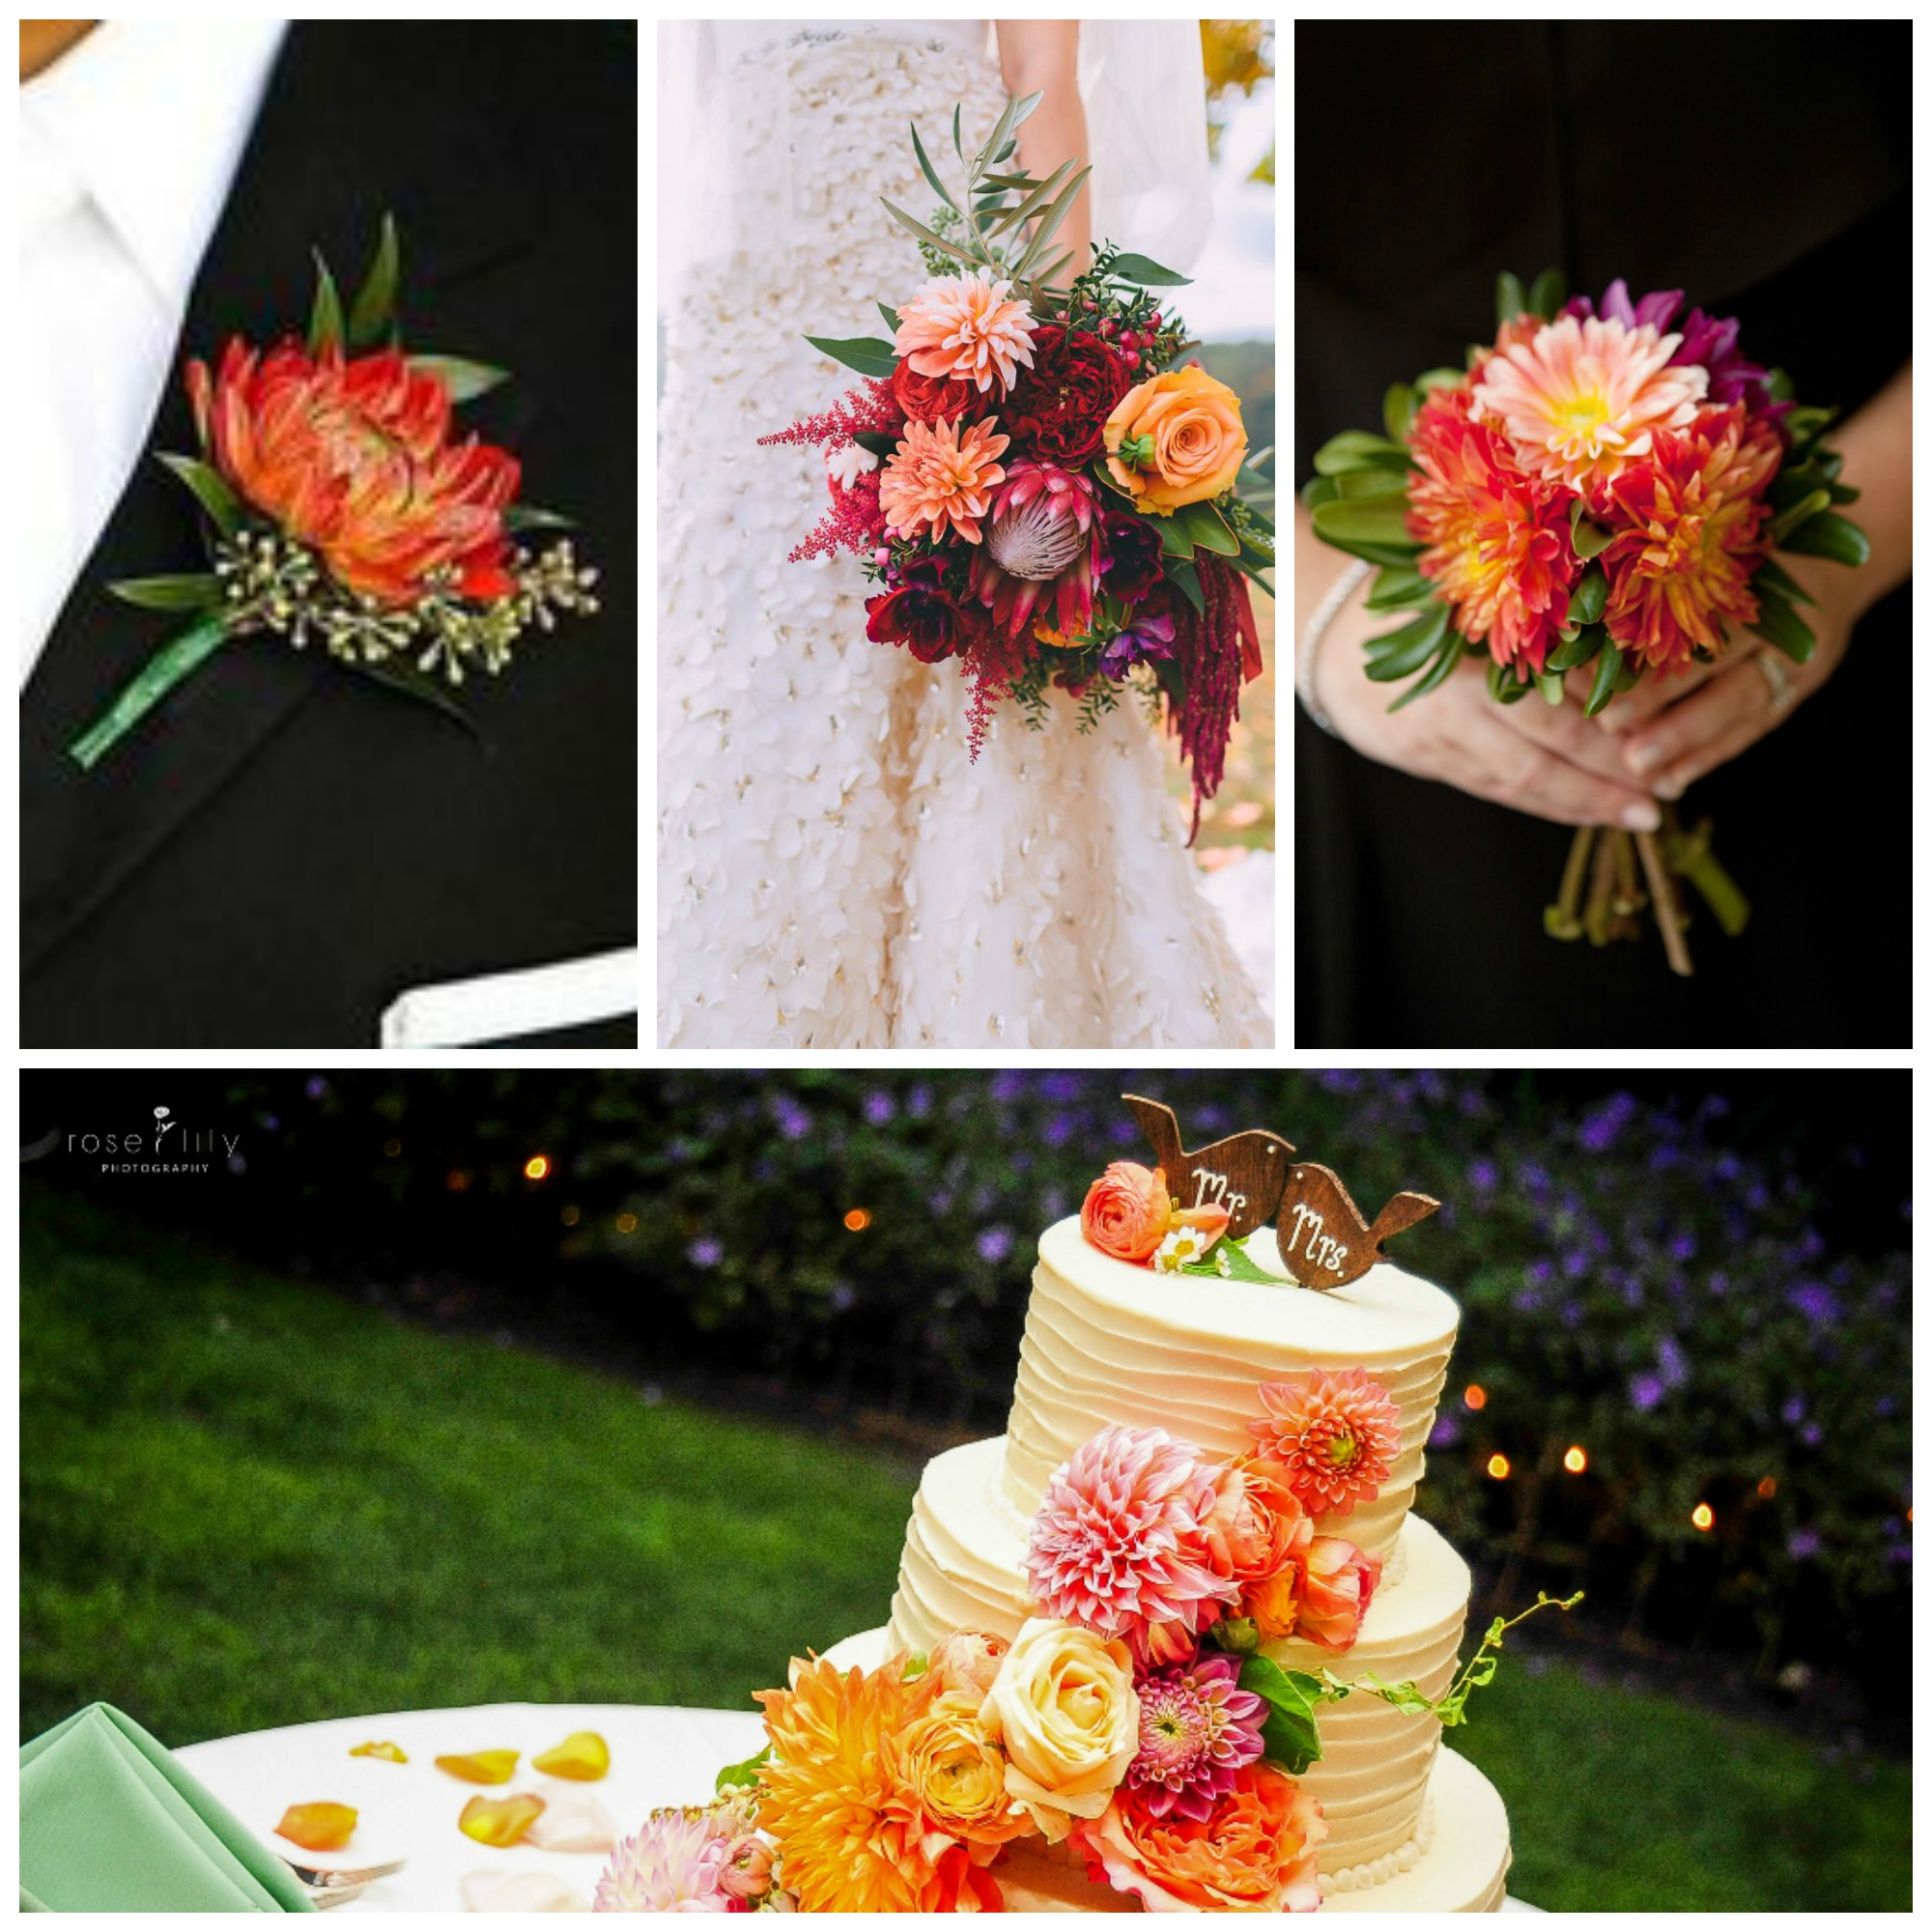 2017 Wedding Flower Trends Part 1 Romantic Wedding Flowers All